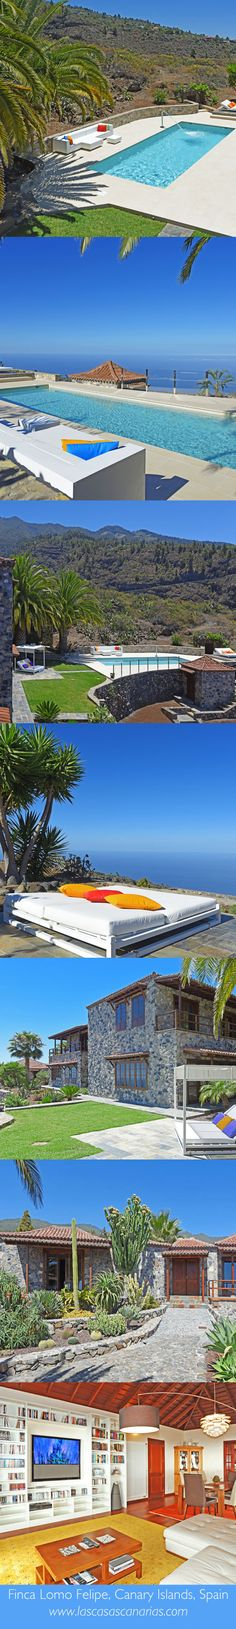 Luxury villa Finca Lomo Felipe, La Palma, Canary Islands, Spain